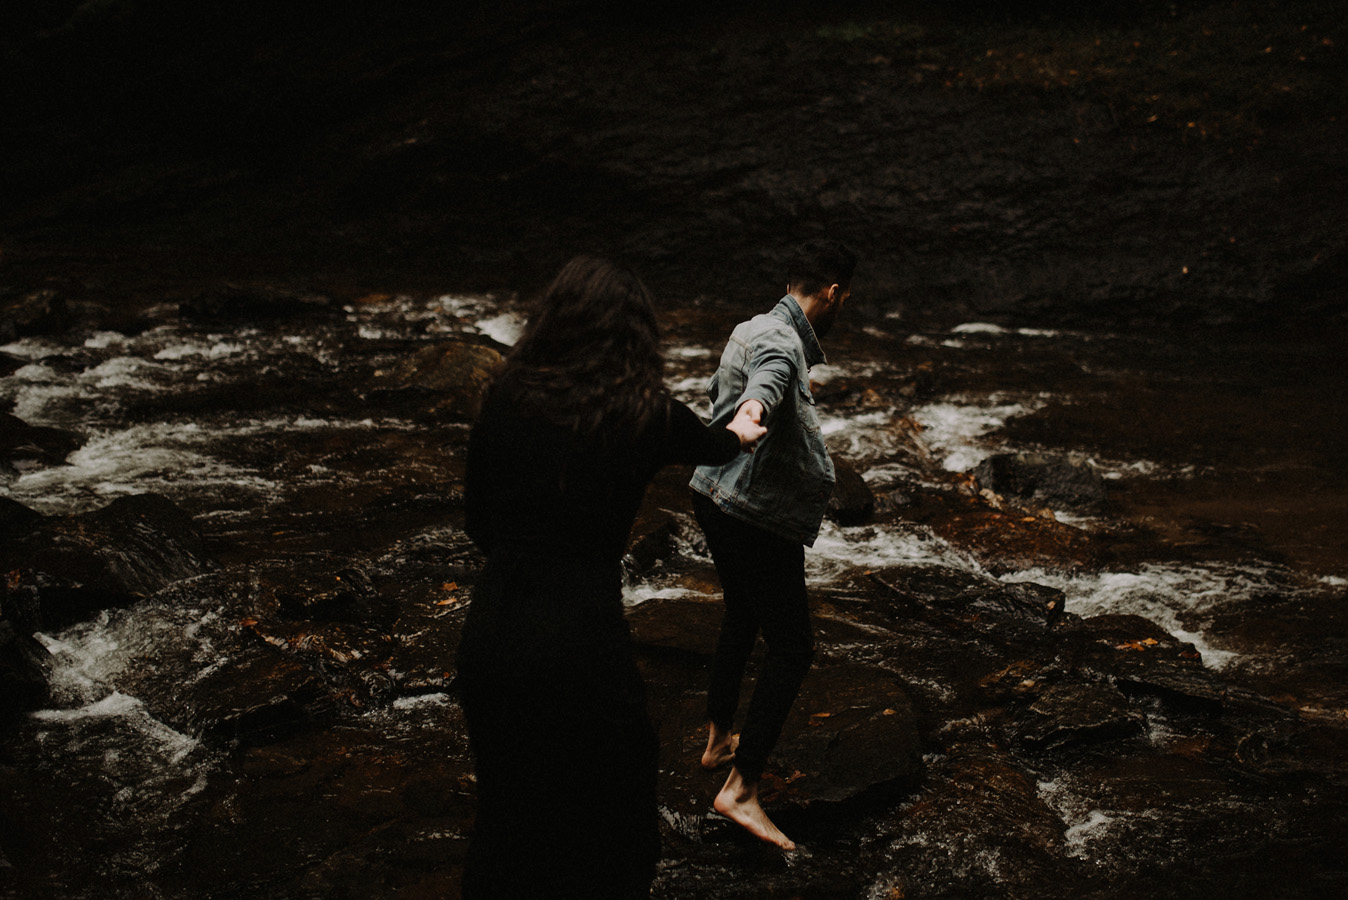 Sunrise Engagement Adventure Hiking Session in the Blue Ridge Smoky Mountains Looking Glass Waterfall